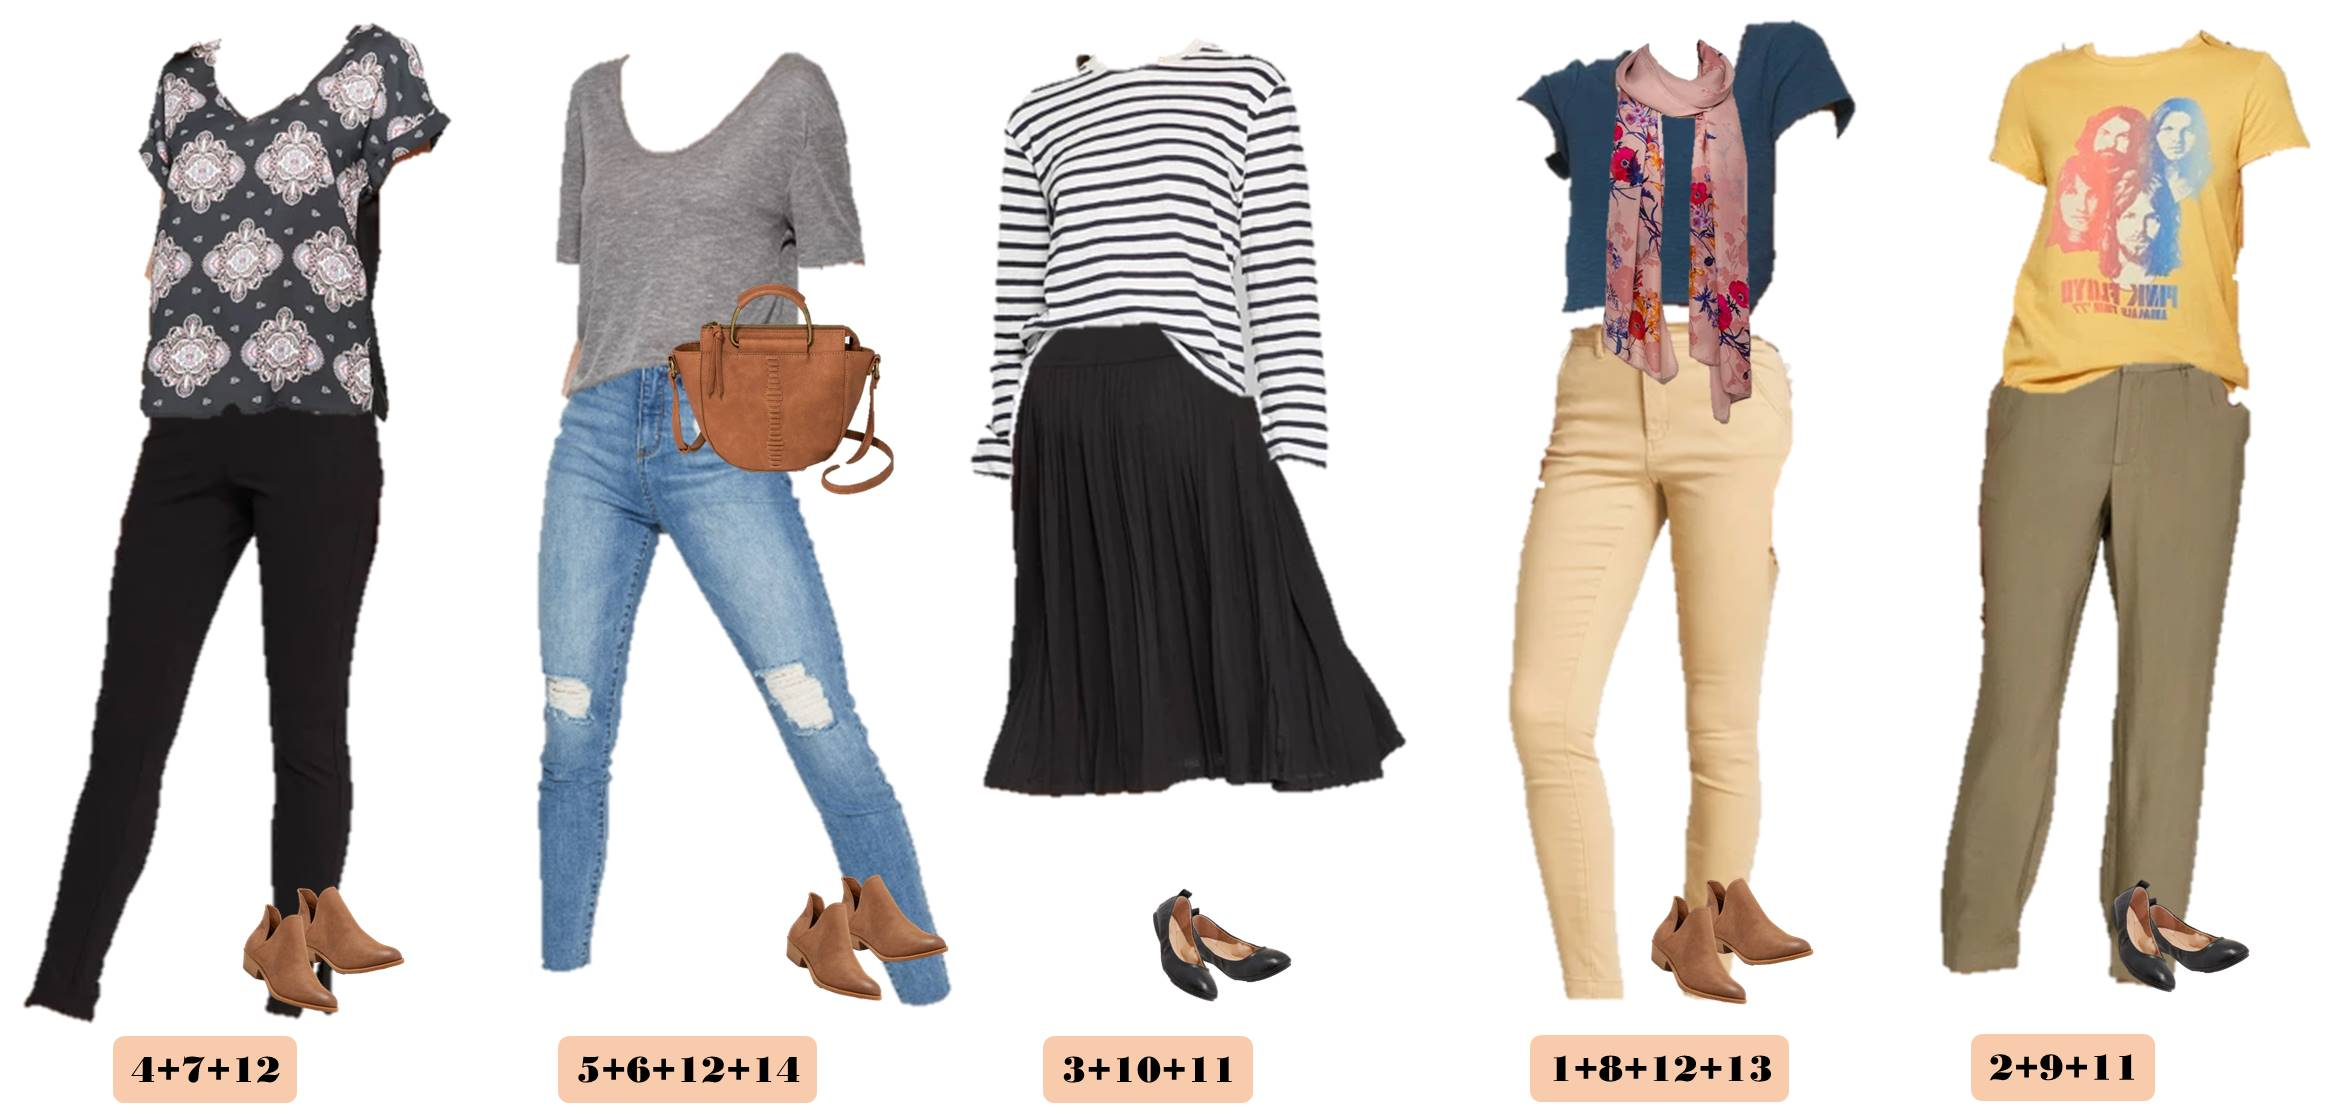 Fall is coming and here is another edition of our Mix and Match Cute Casual Fall Outfits. These pieces are great for casual fall fashion